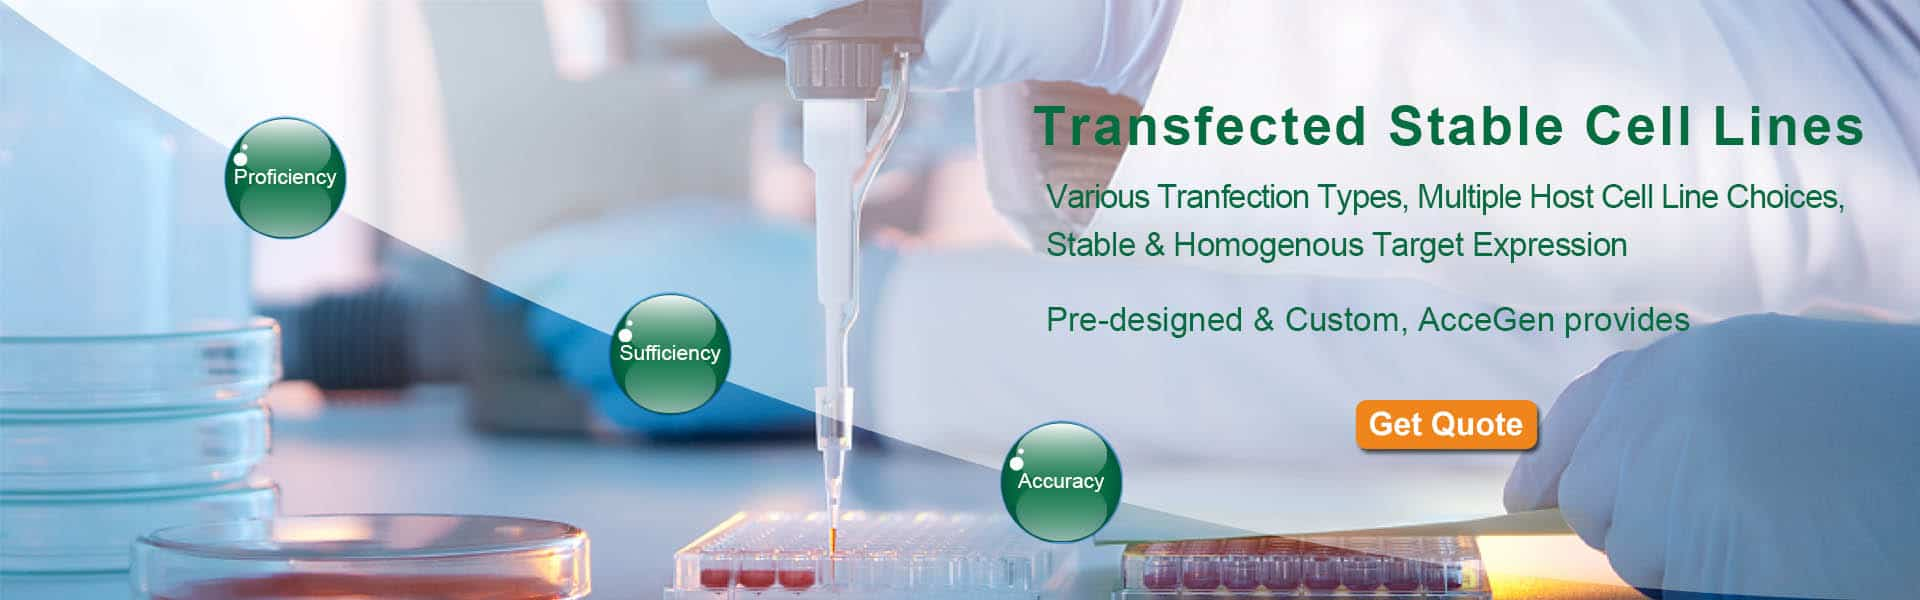 AcceGen Transfected Stable Cell Lines